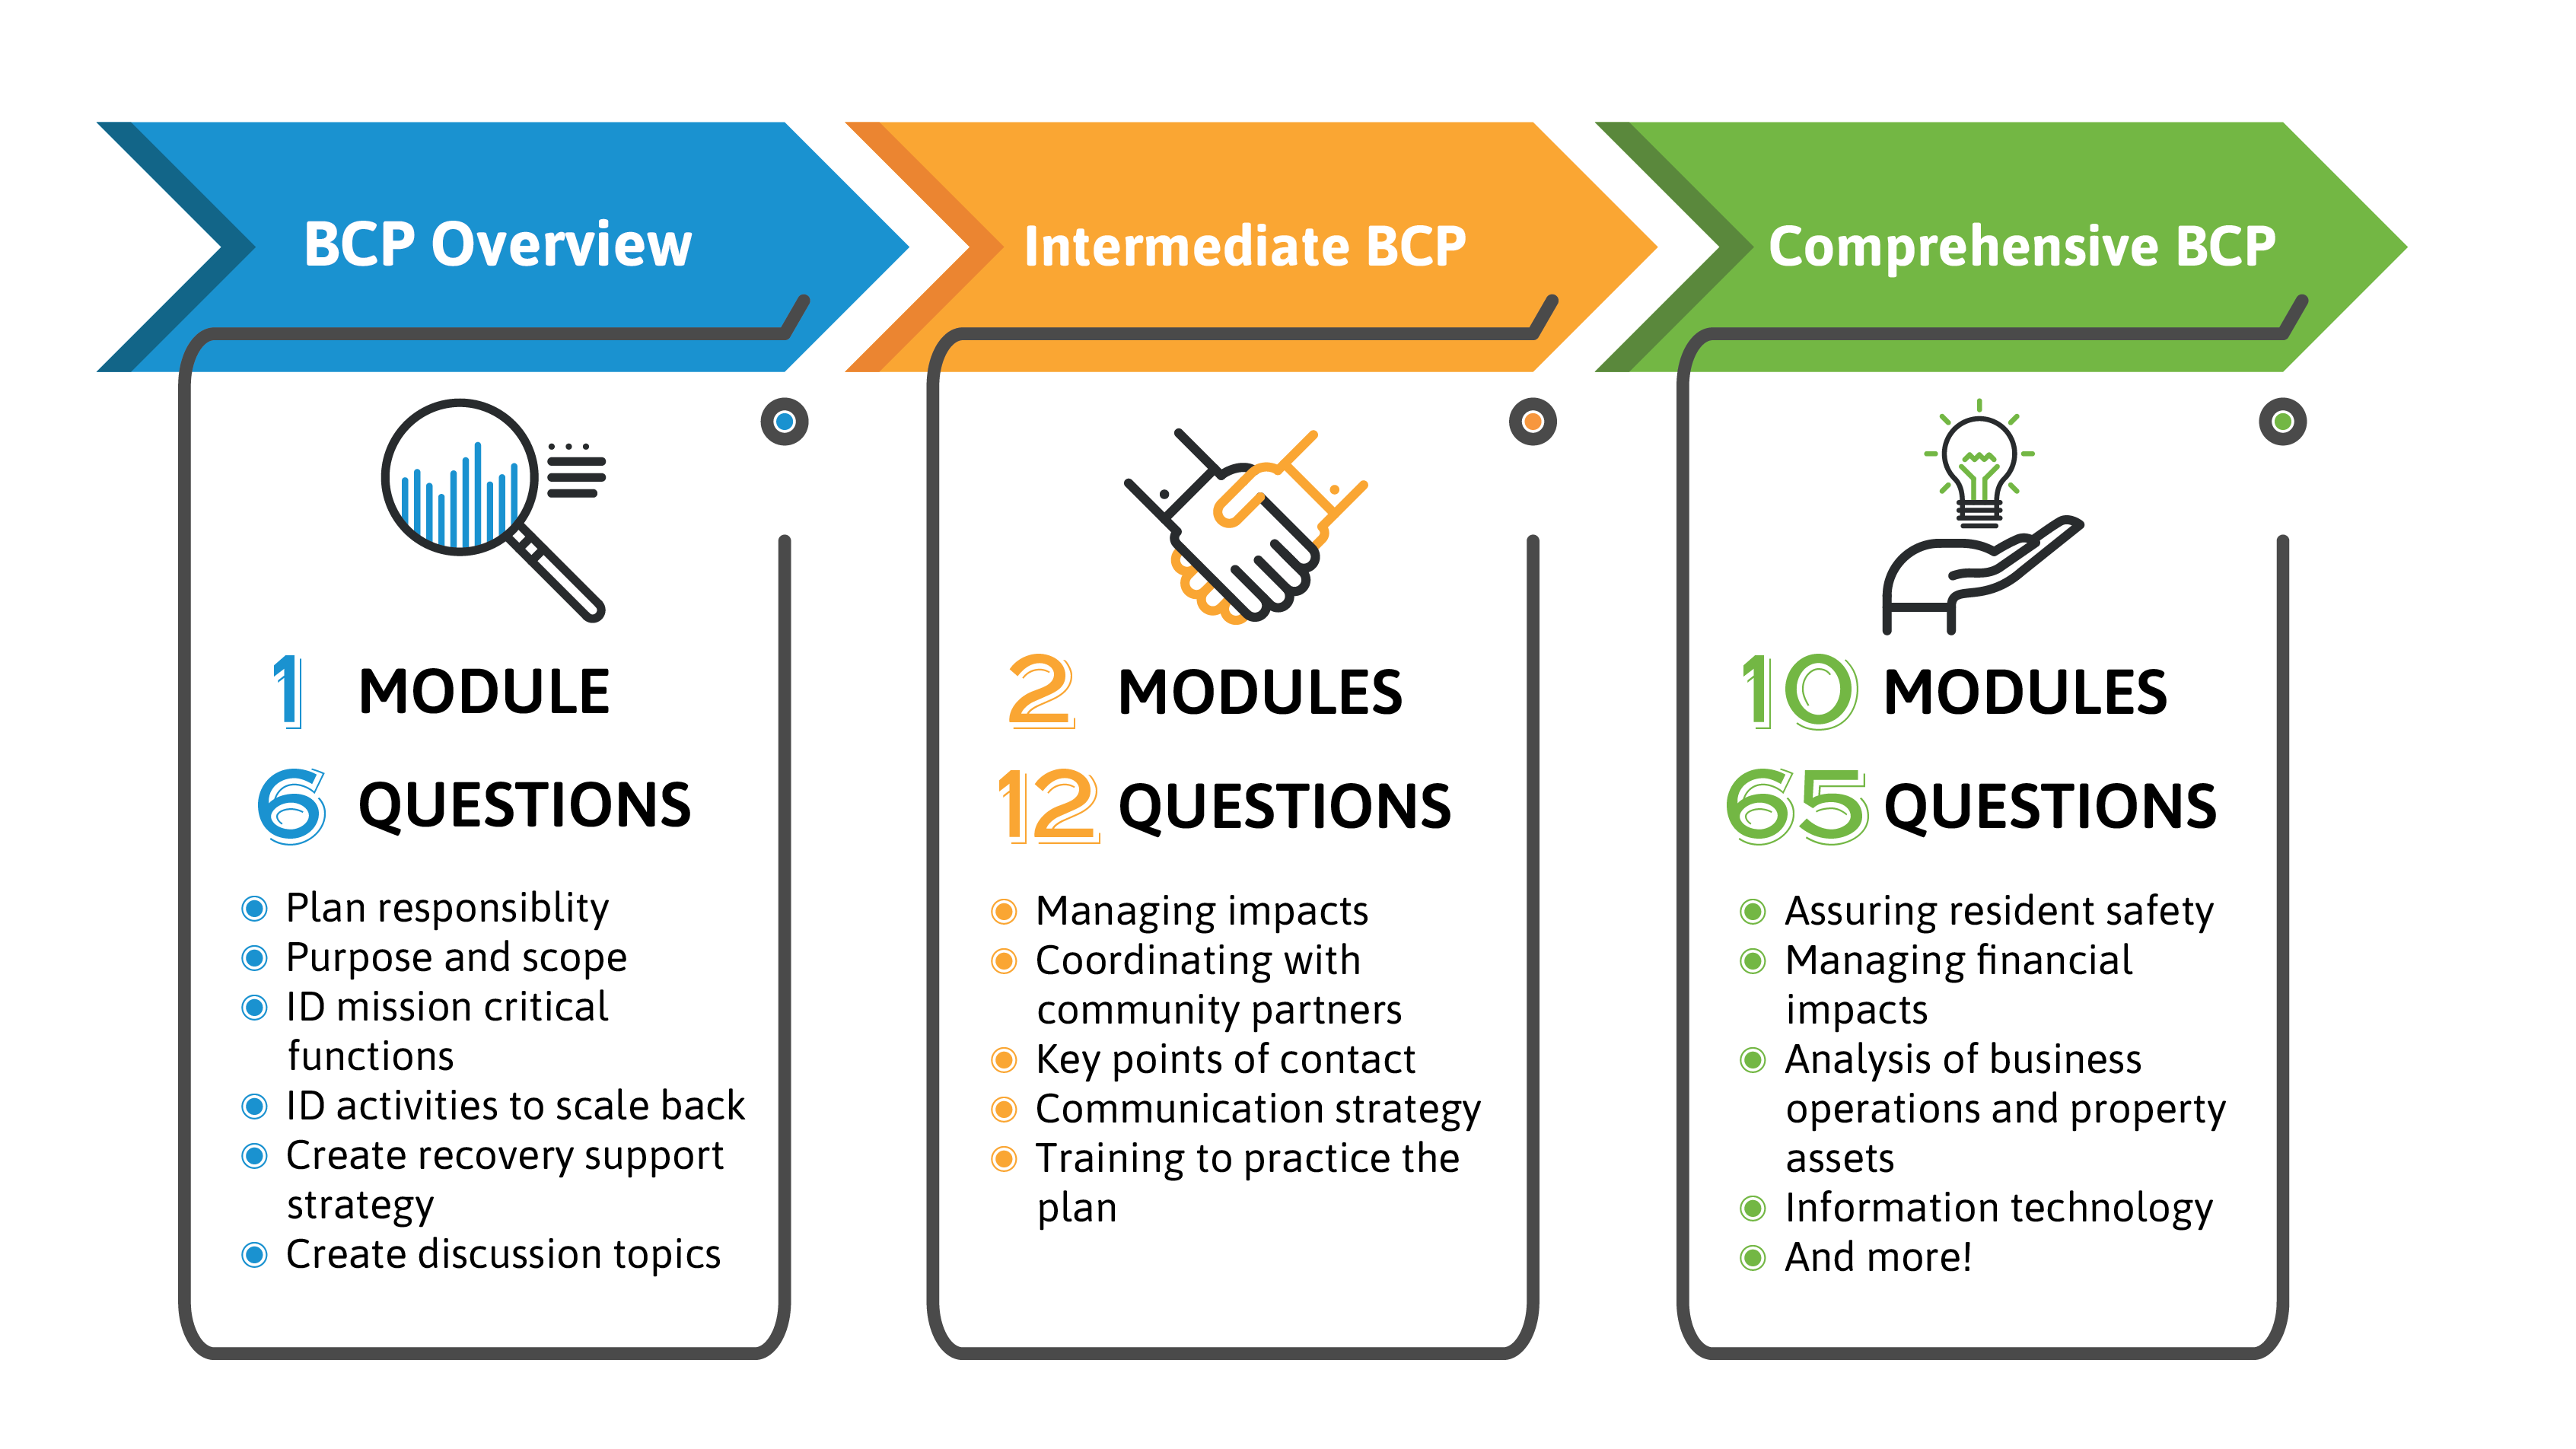 A three column image graphically describing the differences between the three options for business continuity plans available through this tool